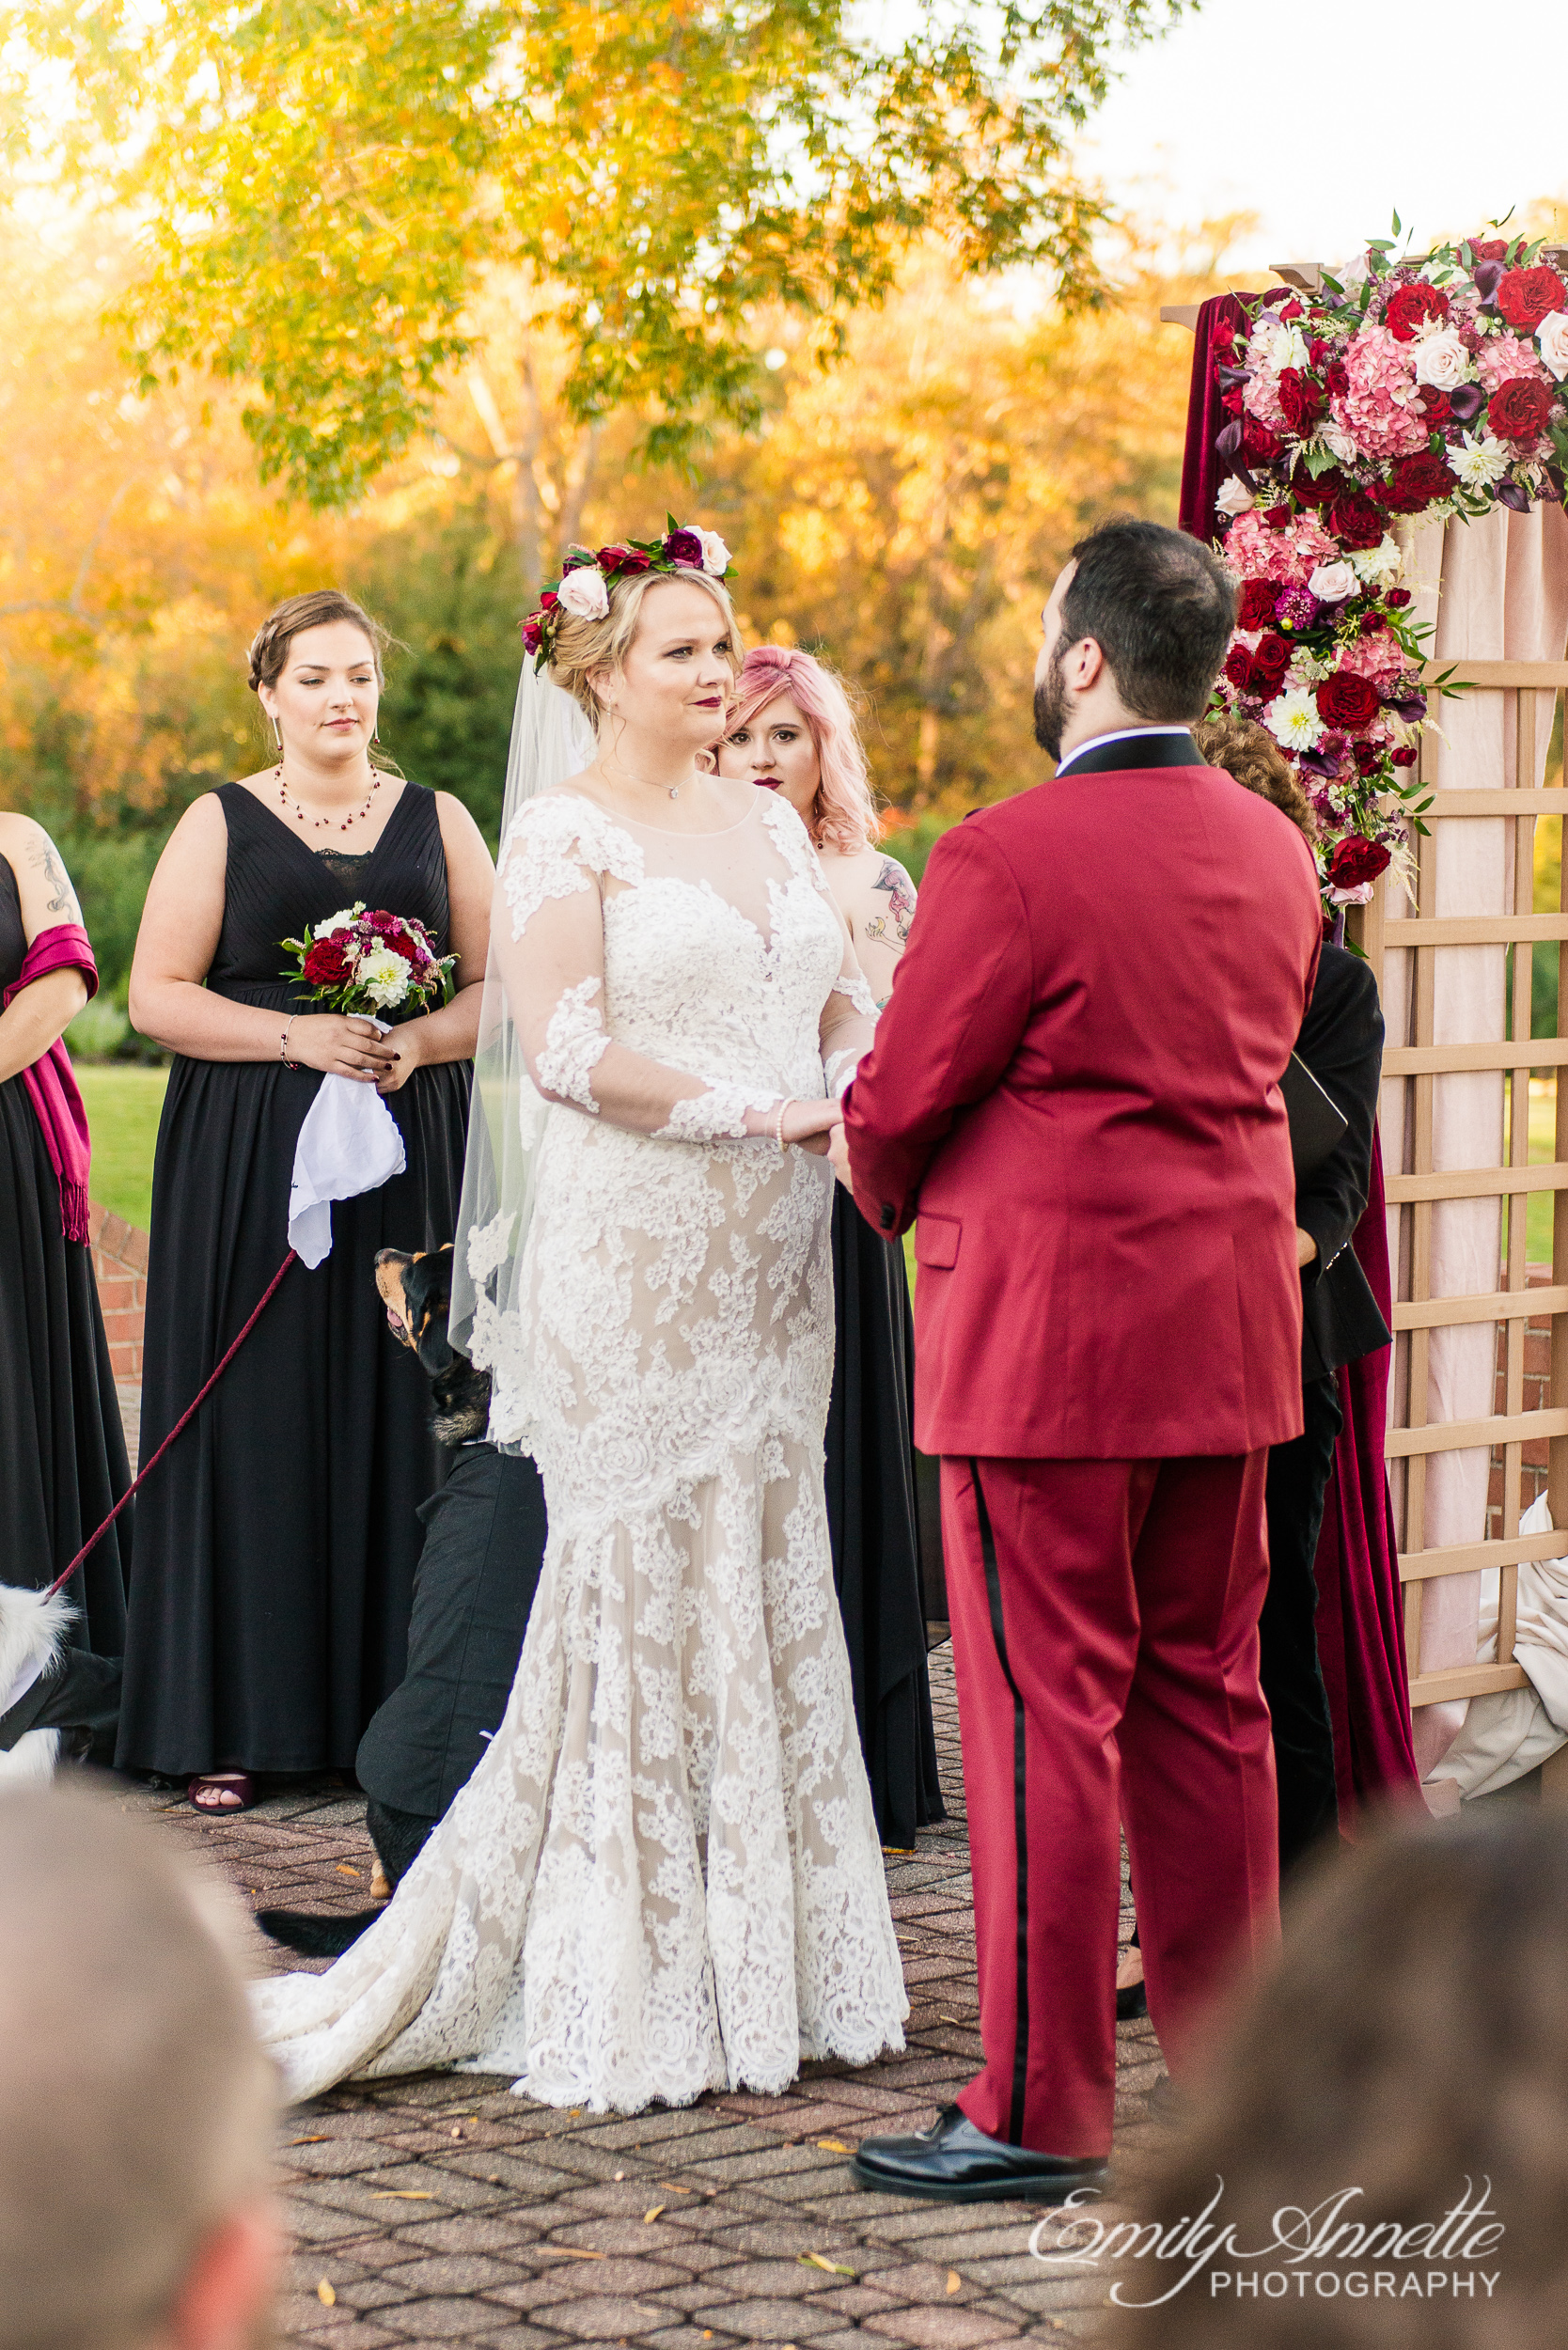 A bride looking at her groom while holding hands during an outdoor wedding ceremony at Willow Oaks Country Club in Richmond, Virginia